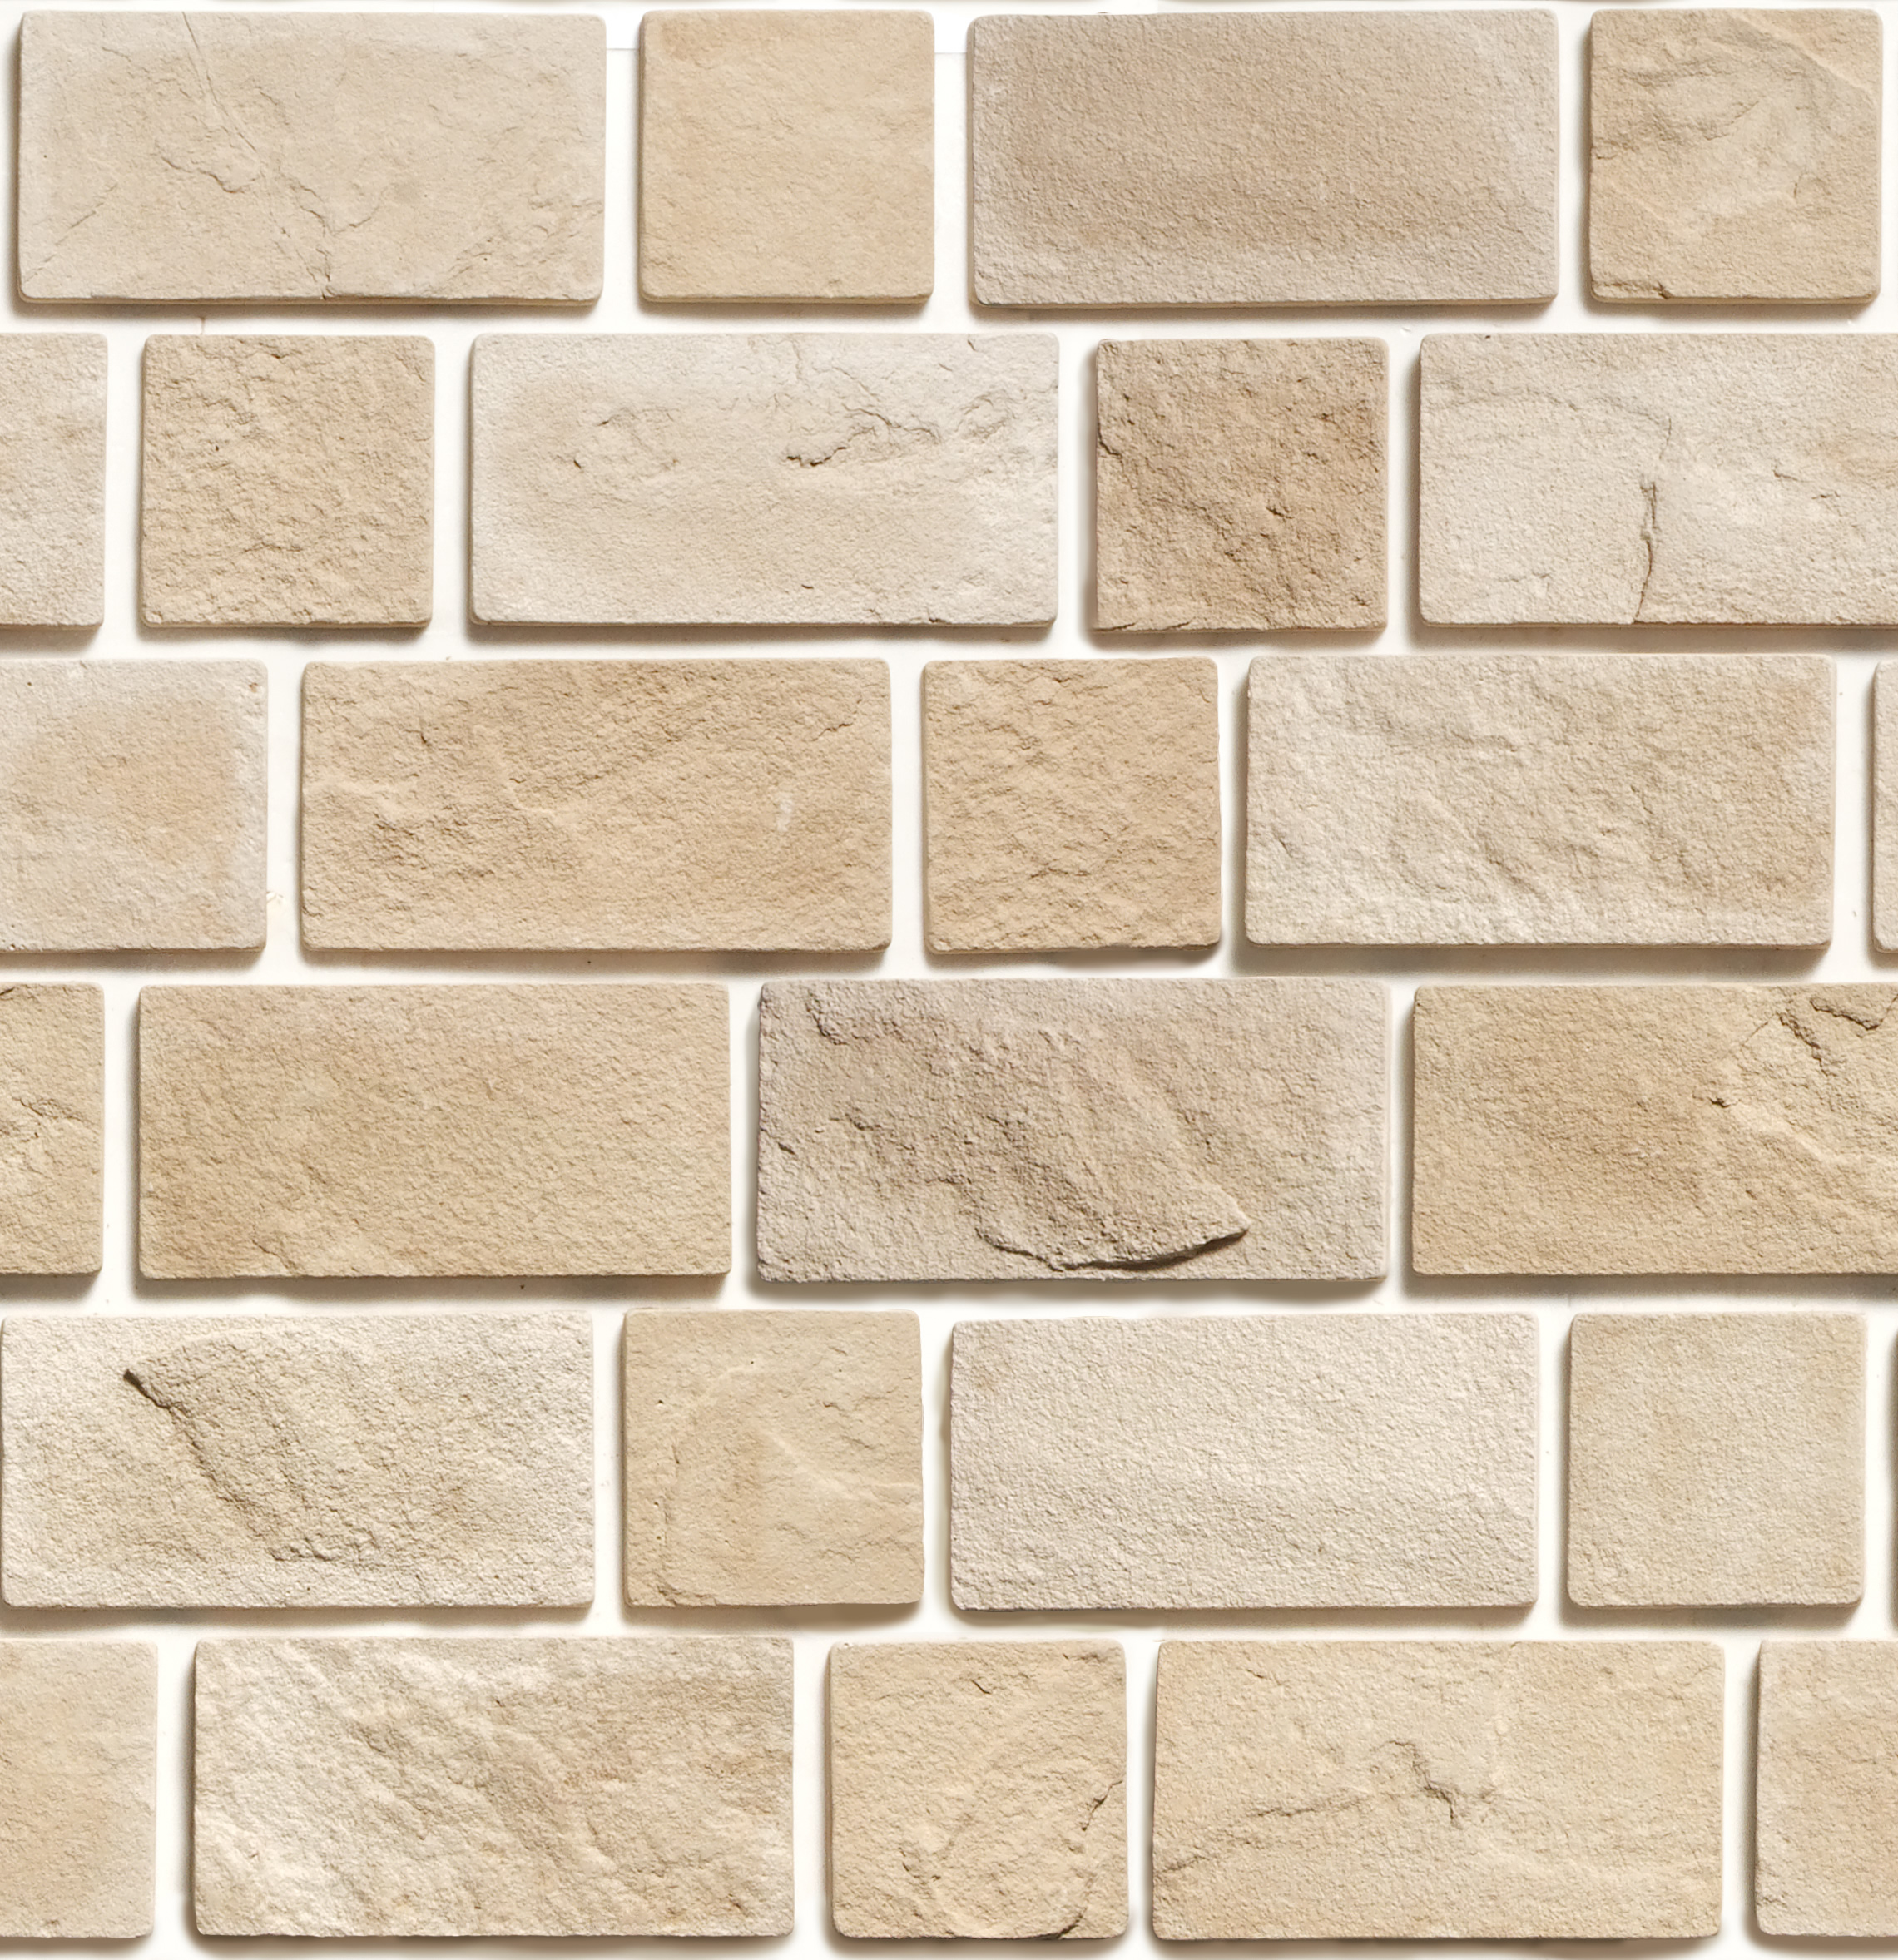 Stone hewn tile texture wall download photo stone texture - Textuur tiling ...